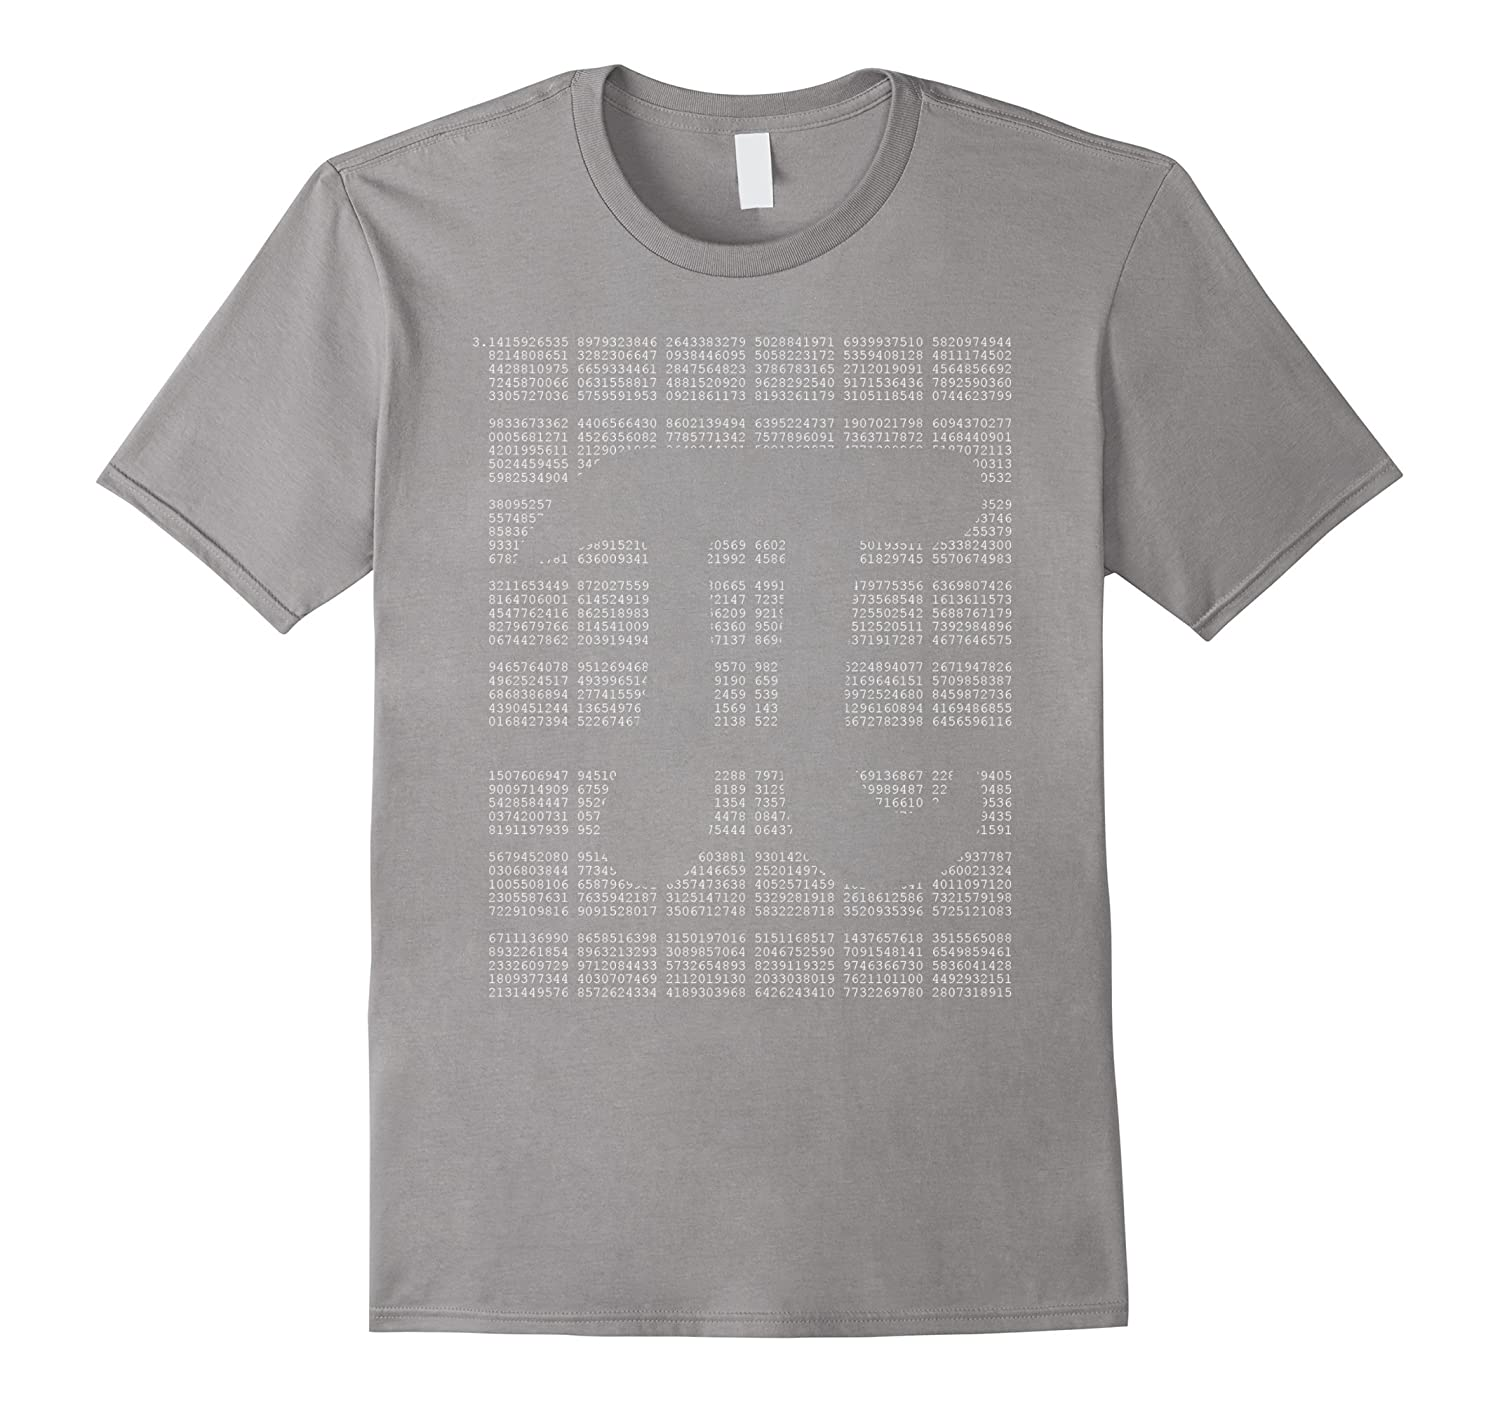 All Pi Number on one Shirt with Pi Symbol T-Shirt-FL